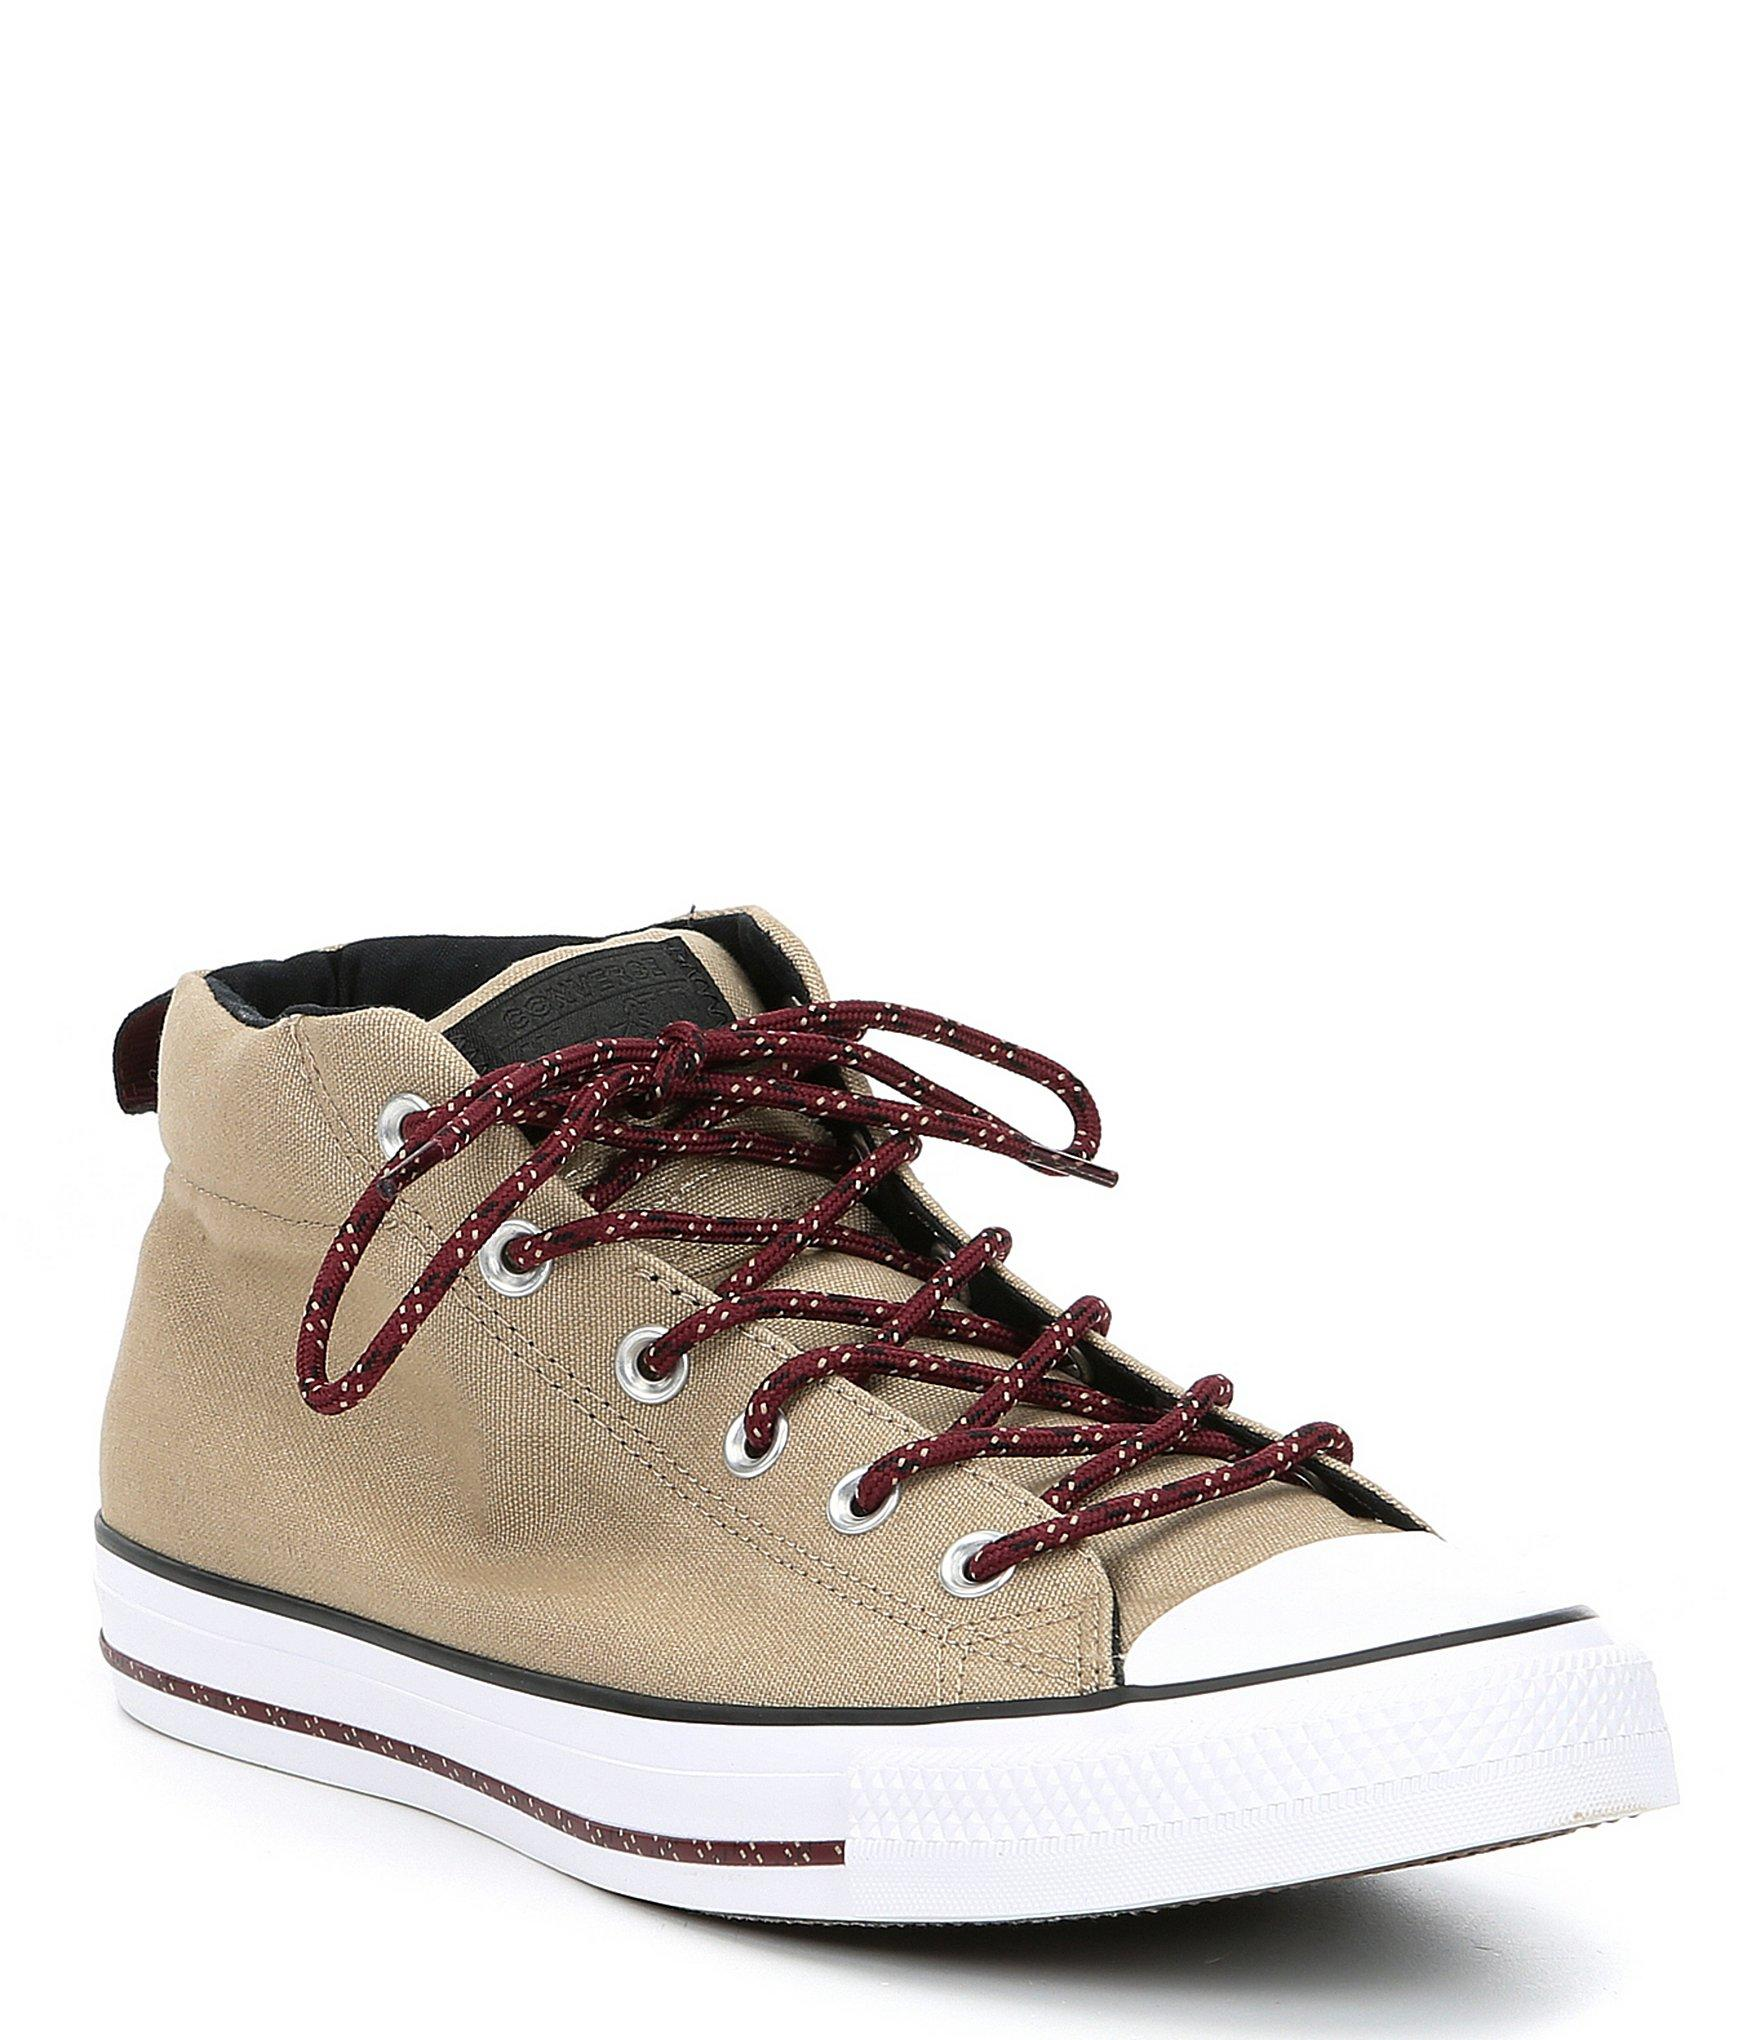 a8bee77a2e84 Lyst - Converse Men s Chuck Taylor All Star Street Lace Up Mid ...